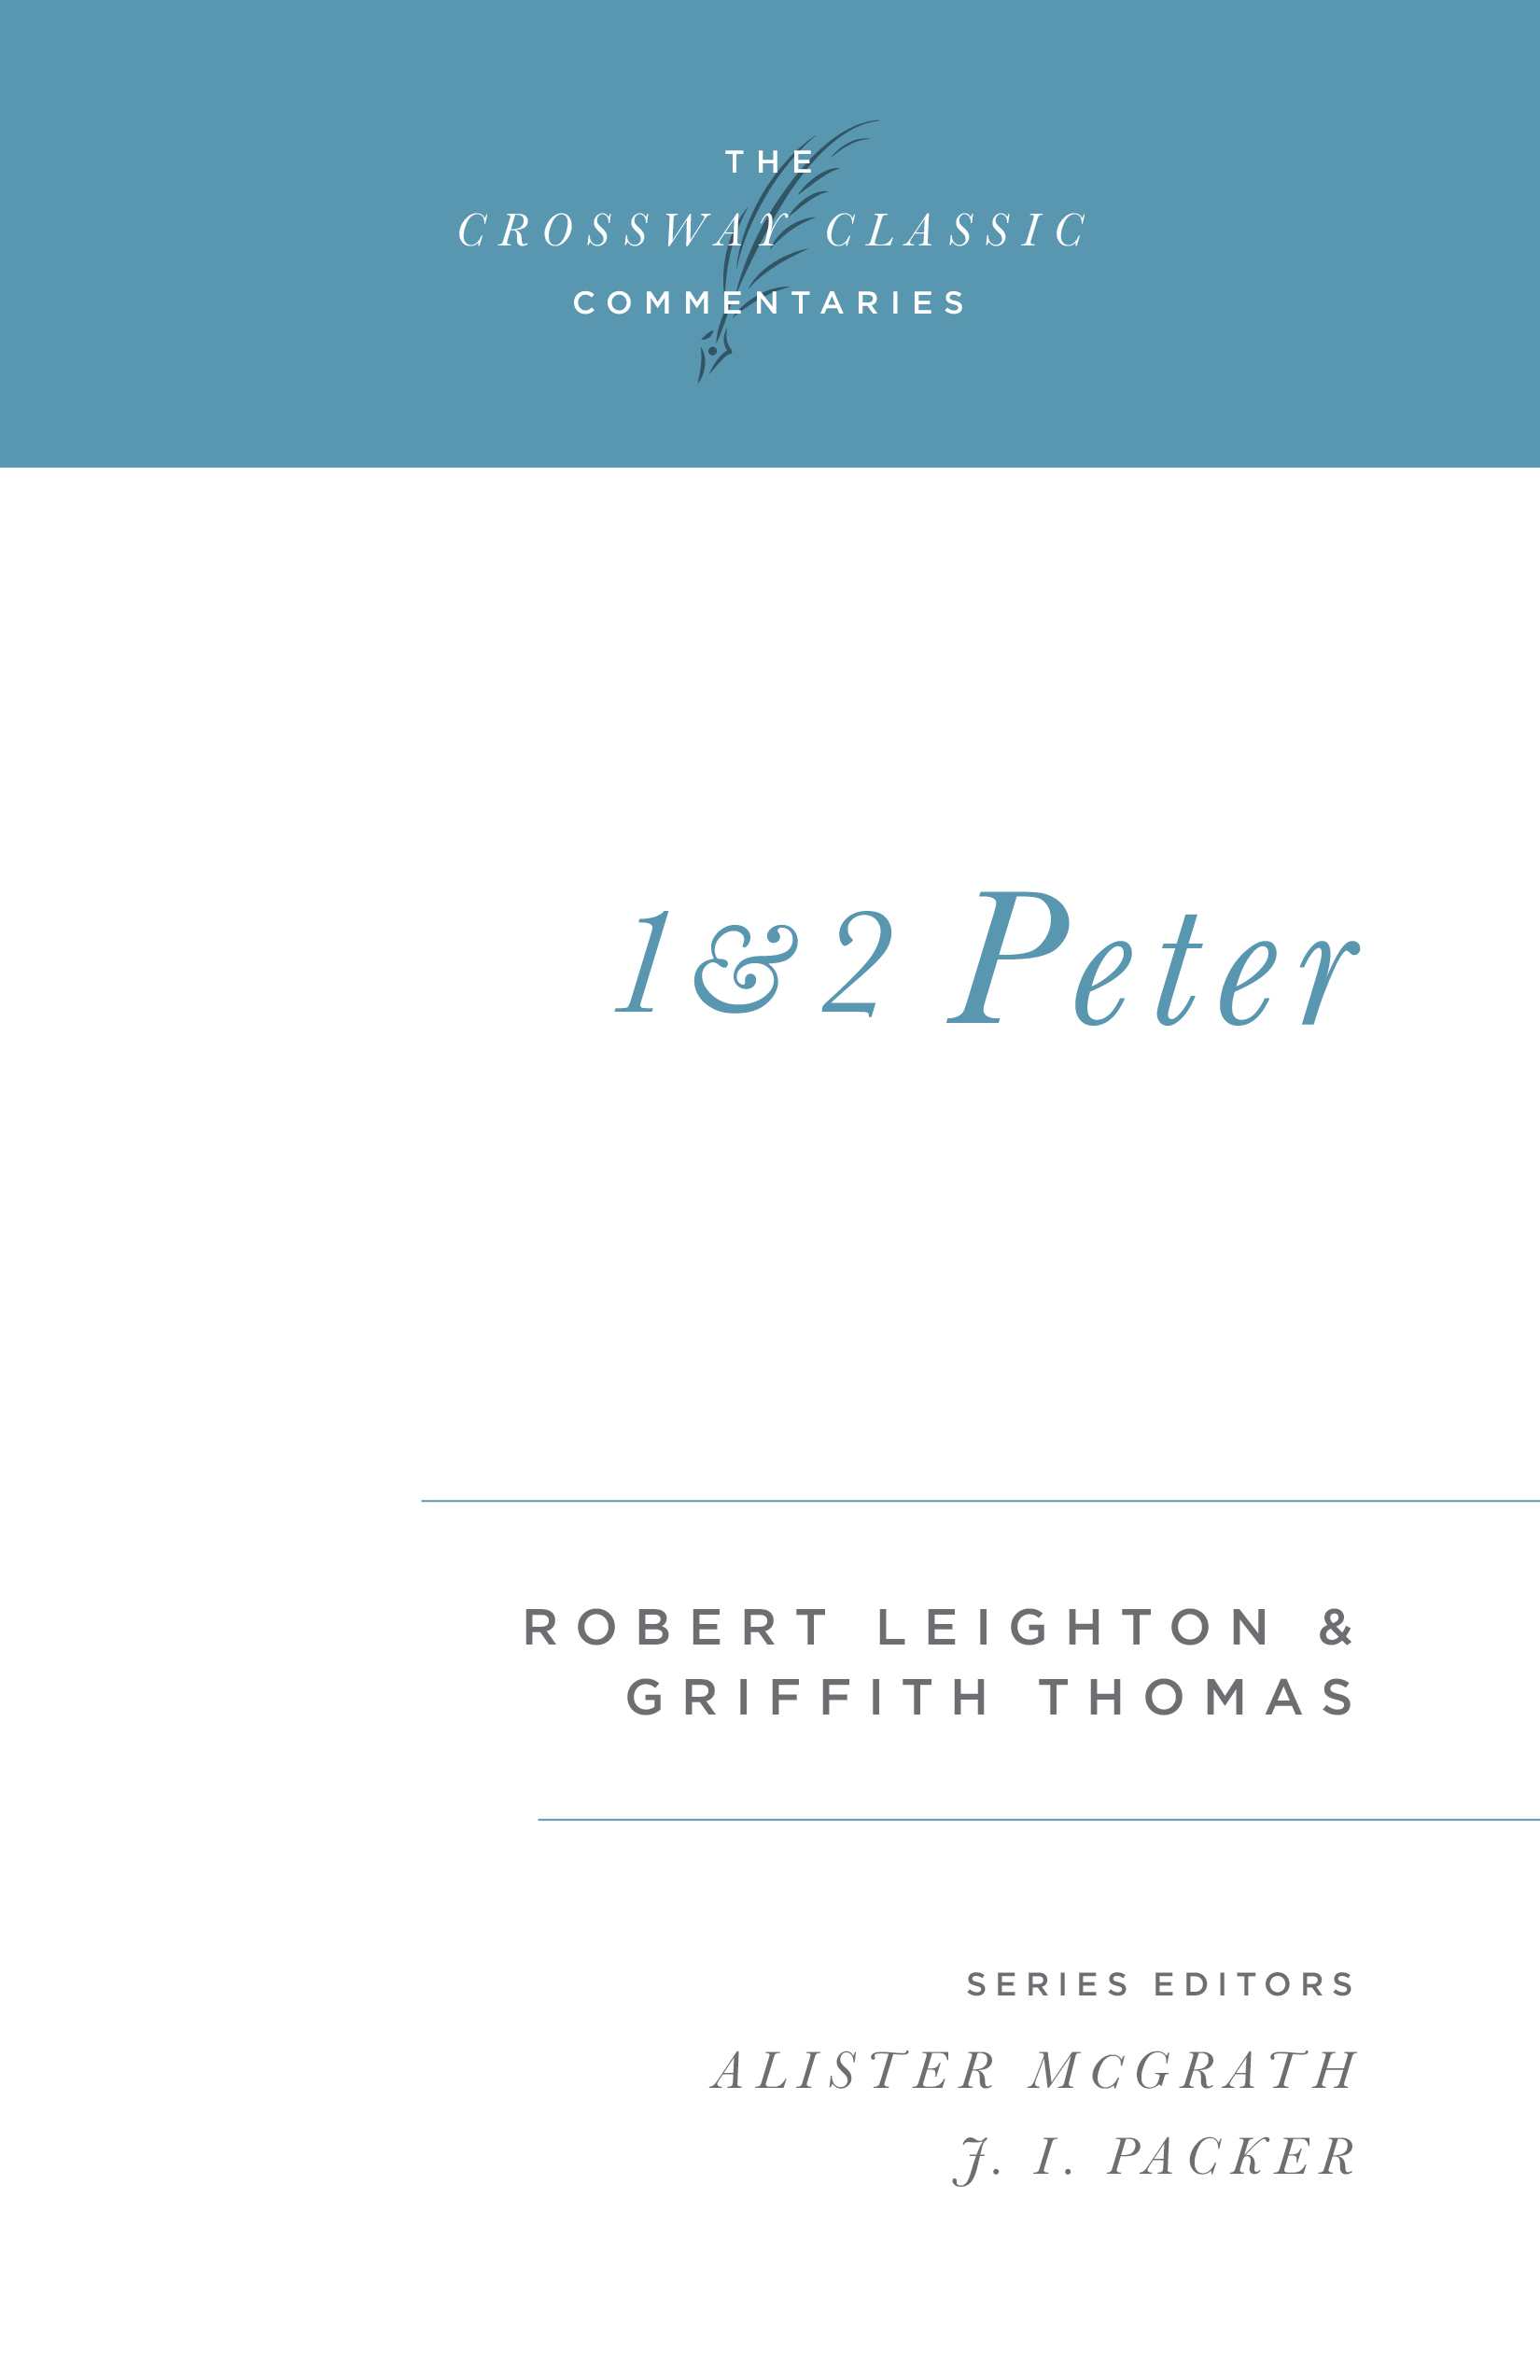 Crossway Classic Commentary - 1 & 2 Peter